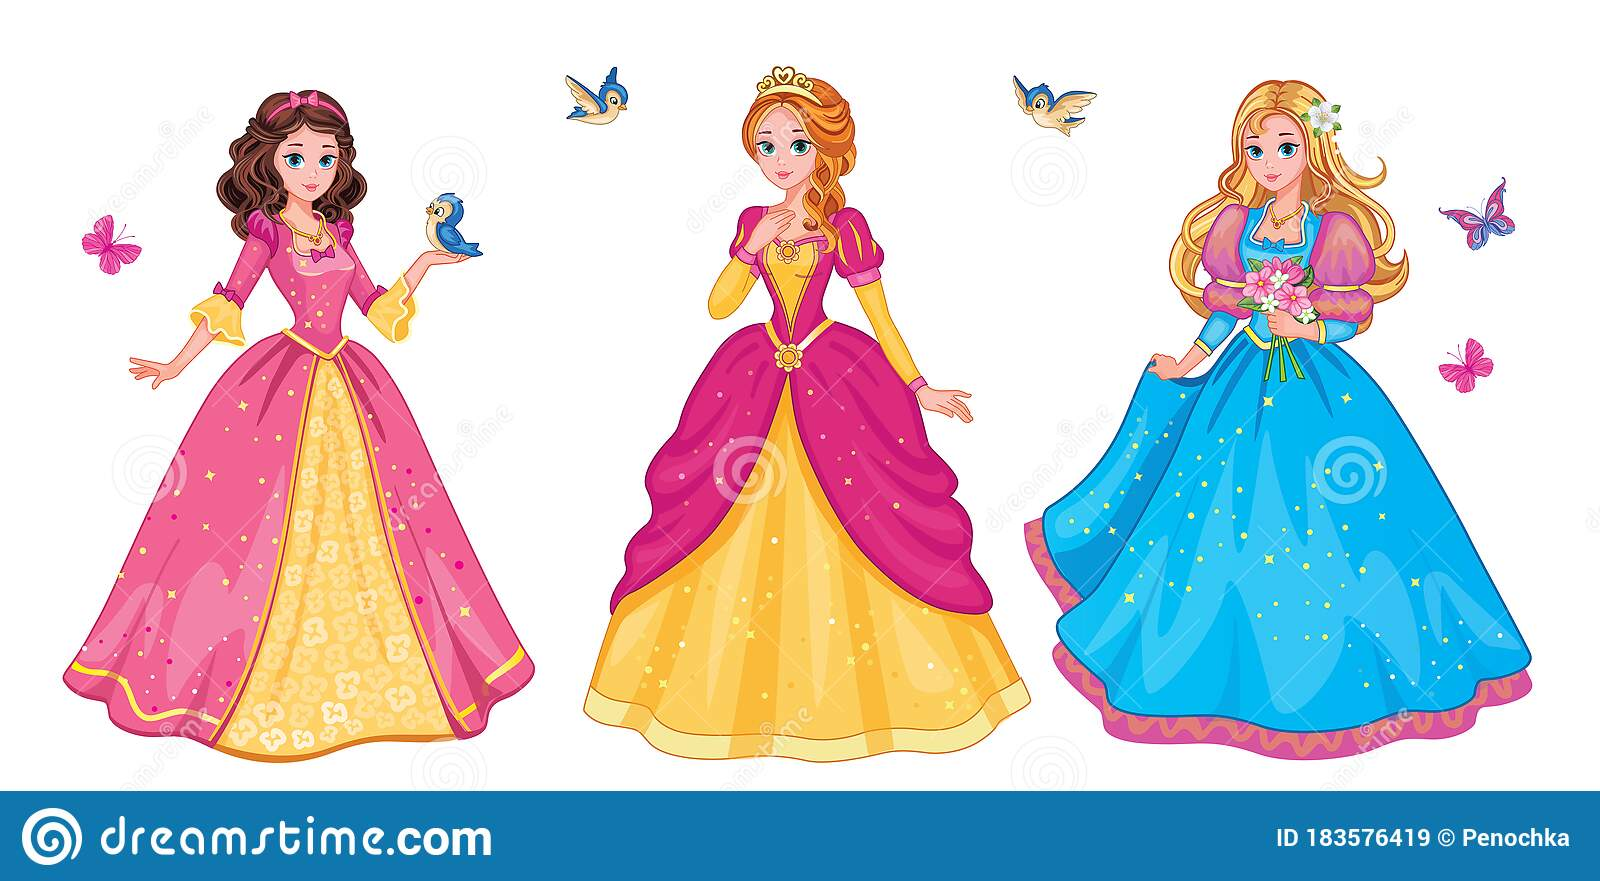 Set Beautiful Fairytale Elf Princess On White Background Children S Illustration For Print Or Sticker Isolated Illustration Stock Vector Illustration Of Children Beautiful 183576419